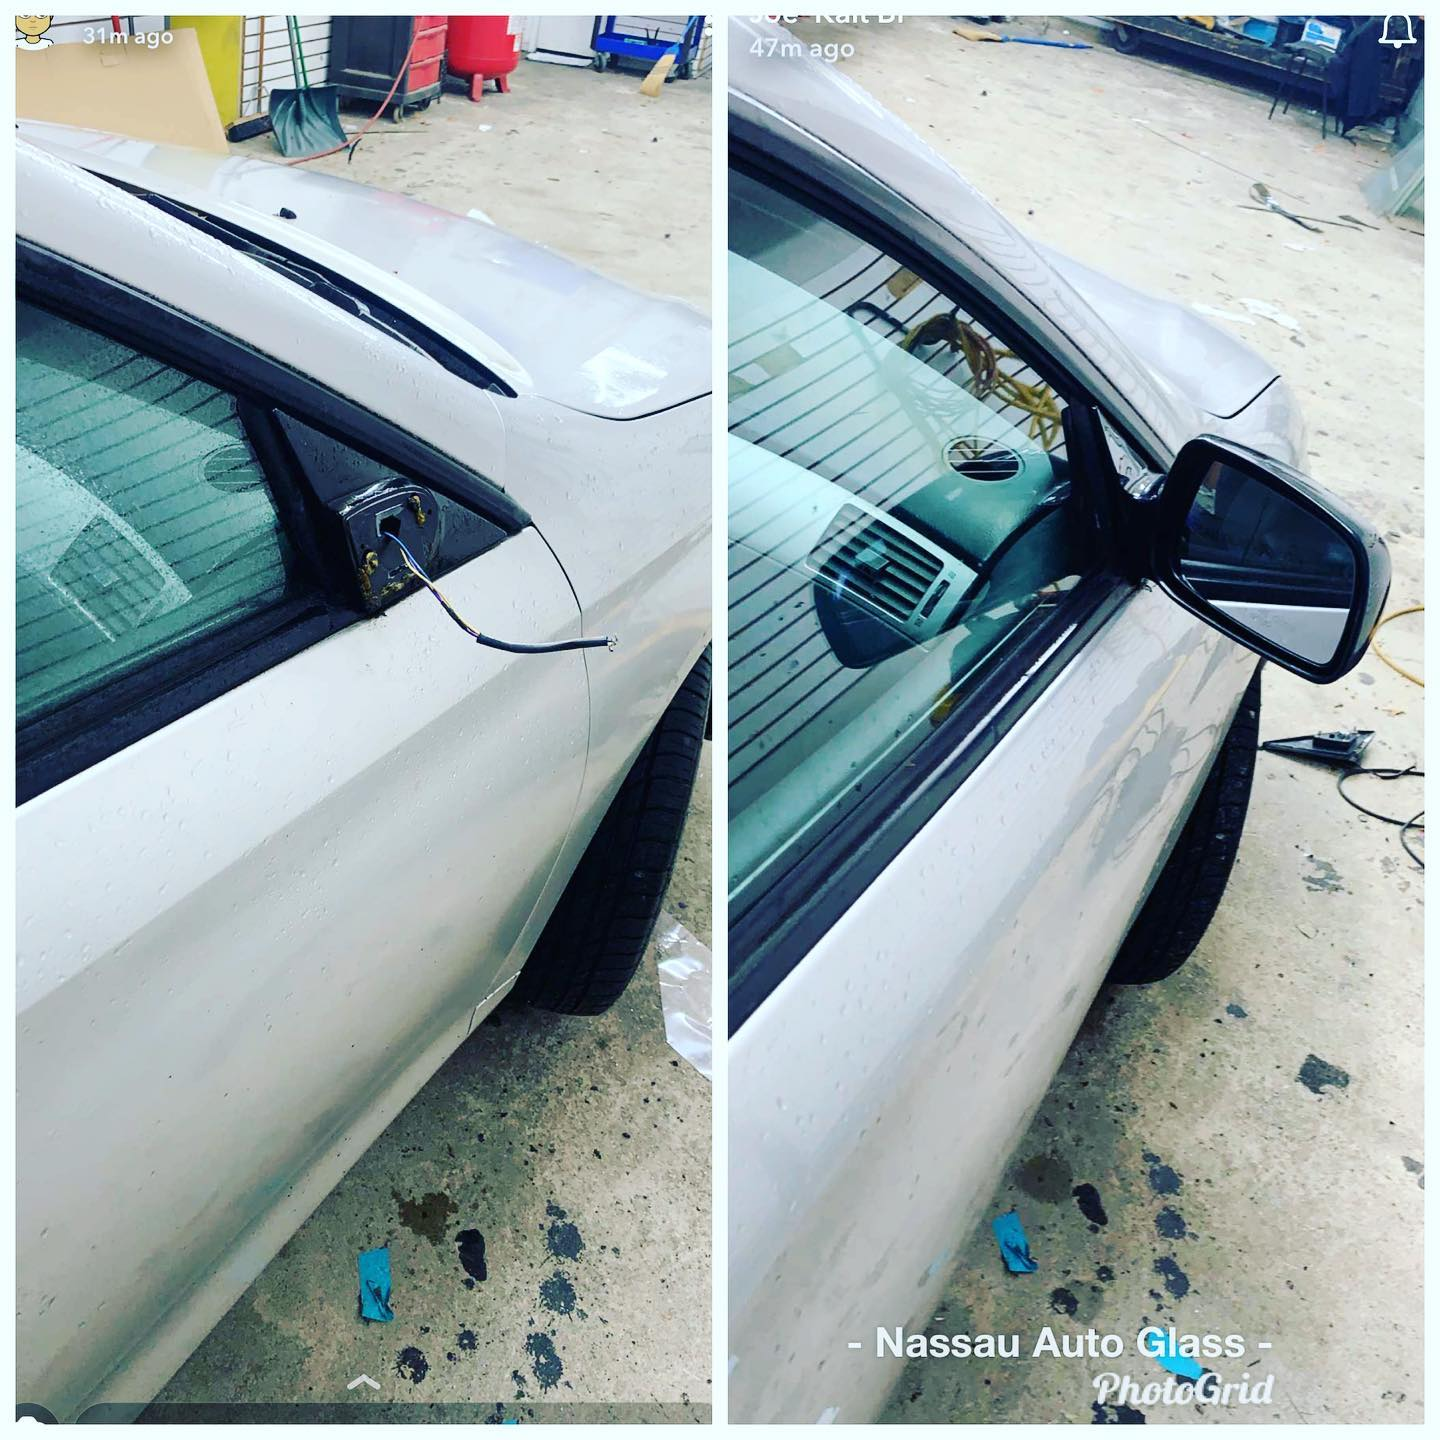 Nassau Auto Glass Services: Before & After Picture 14